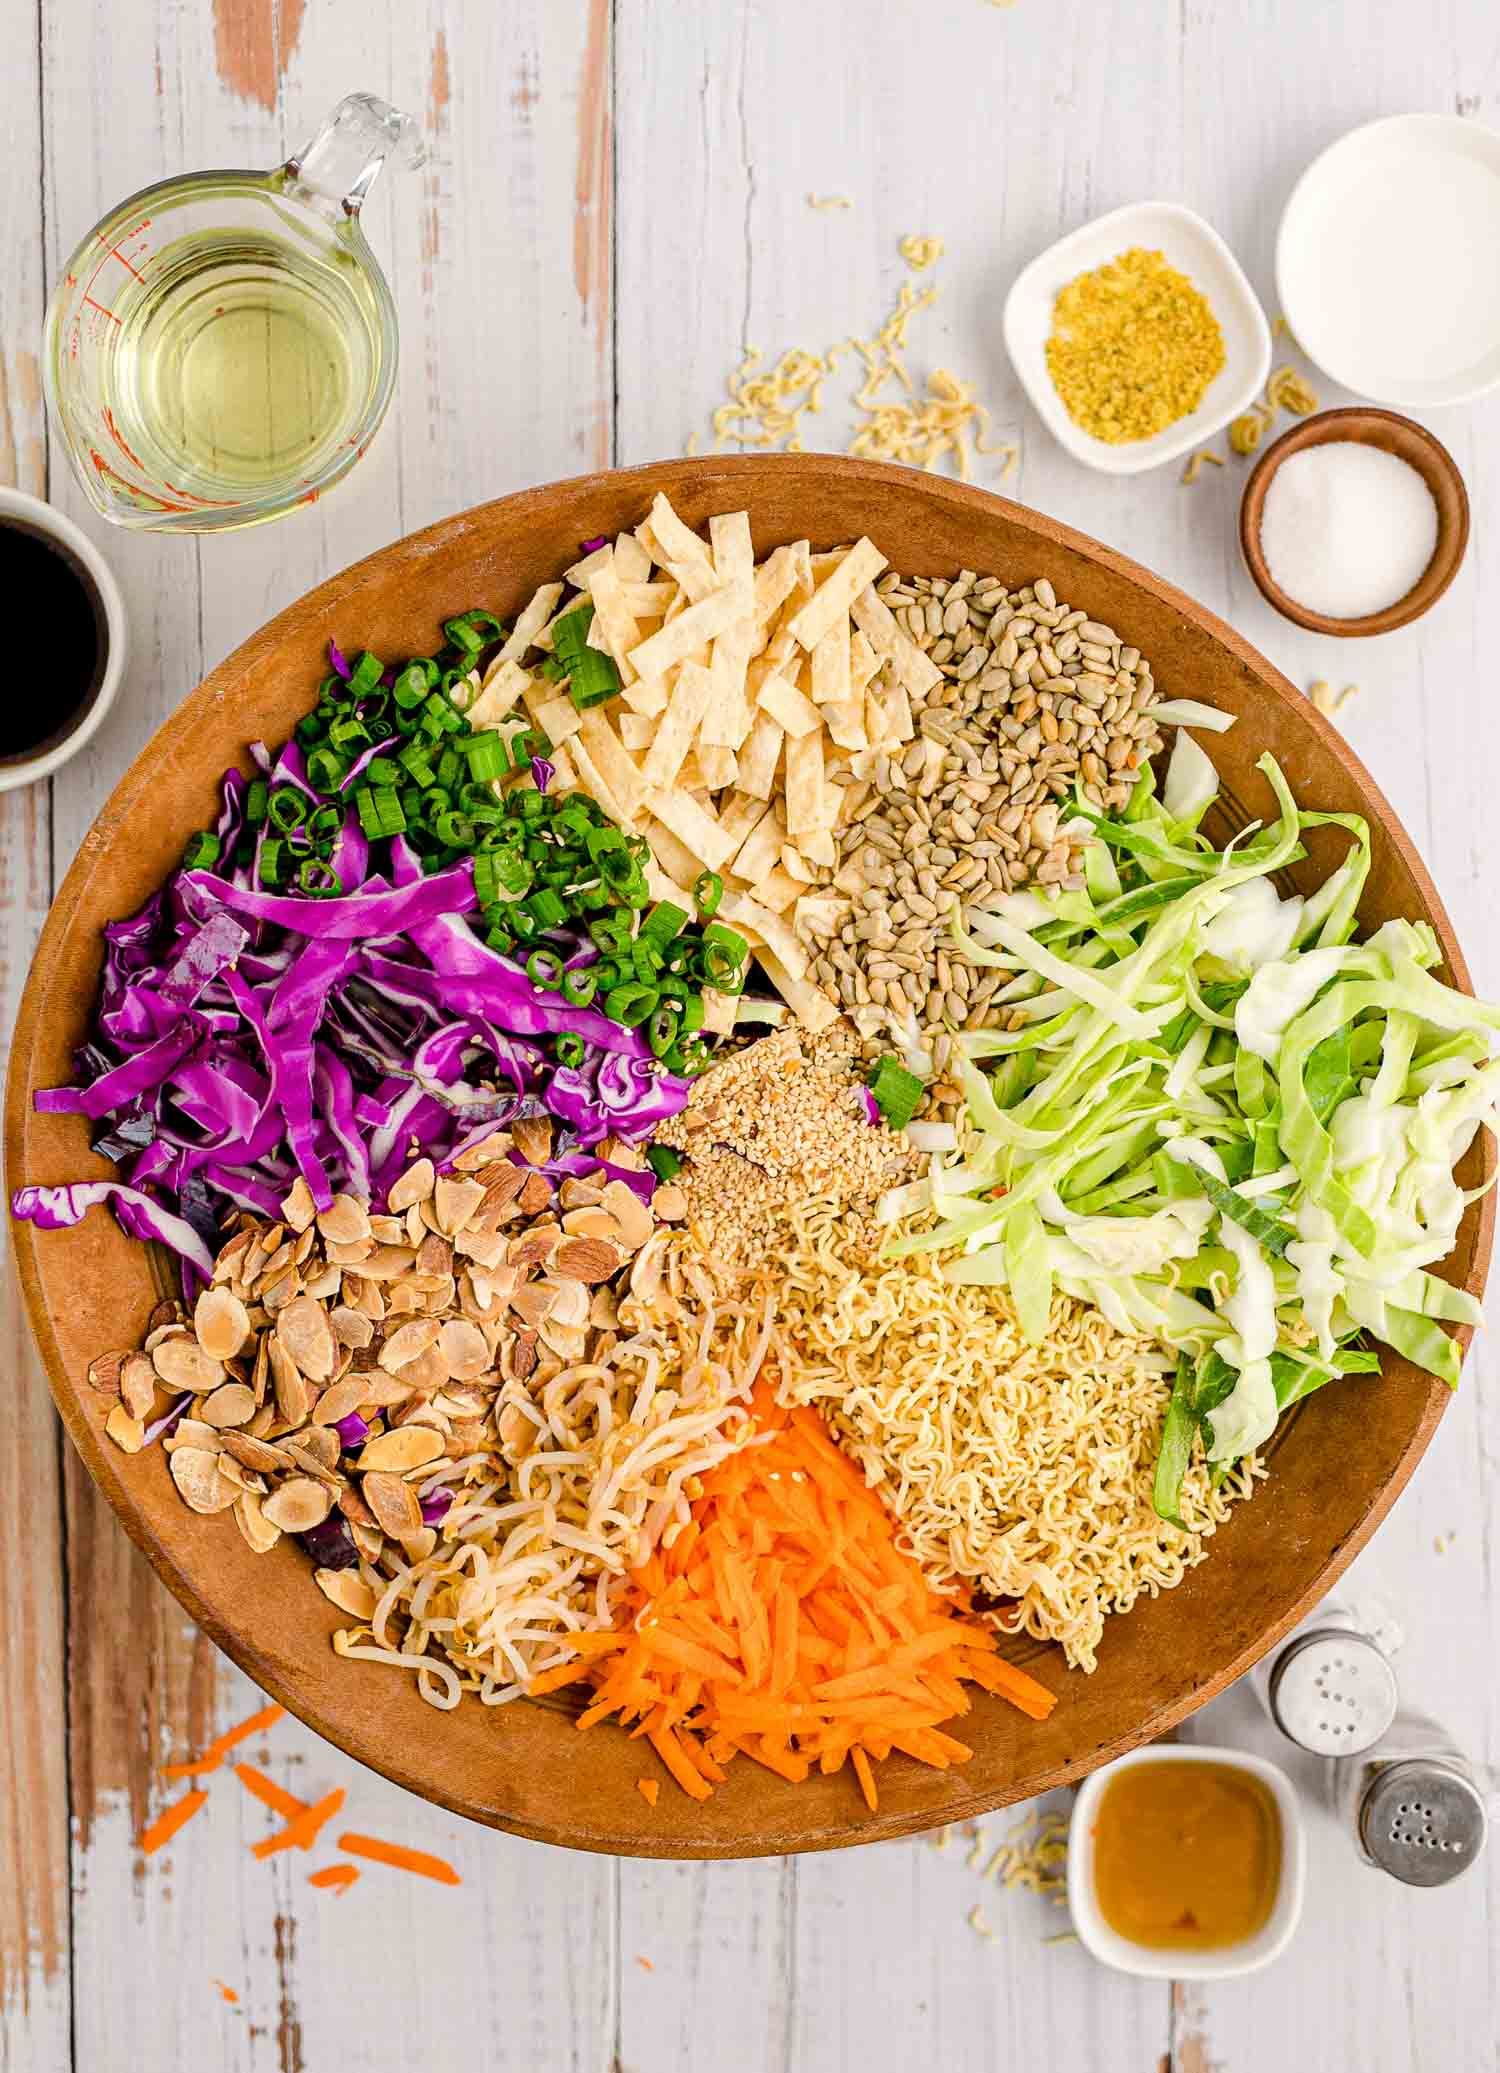 Unmixed ingredients in a large wooden bowl.